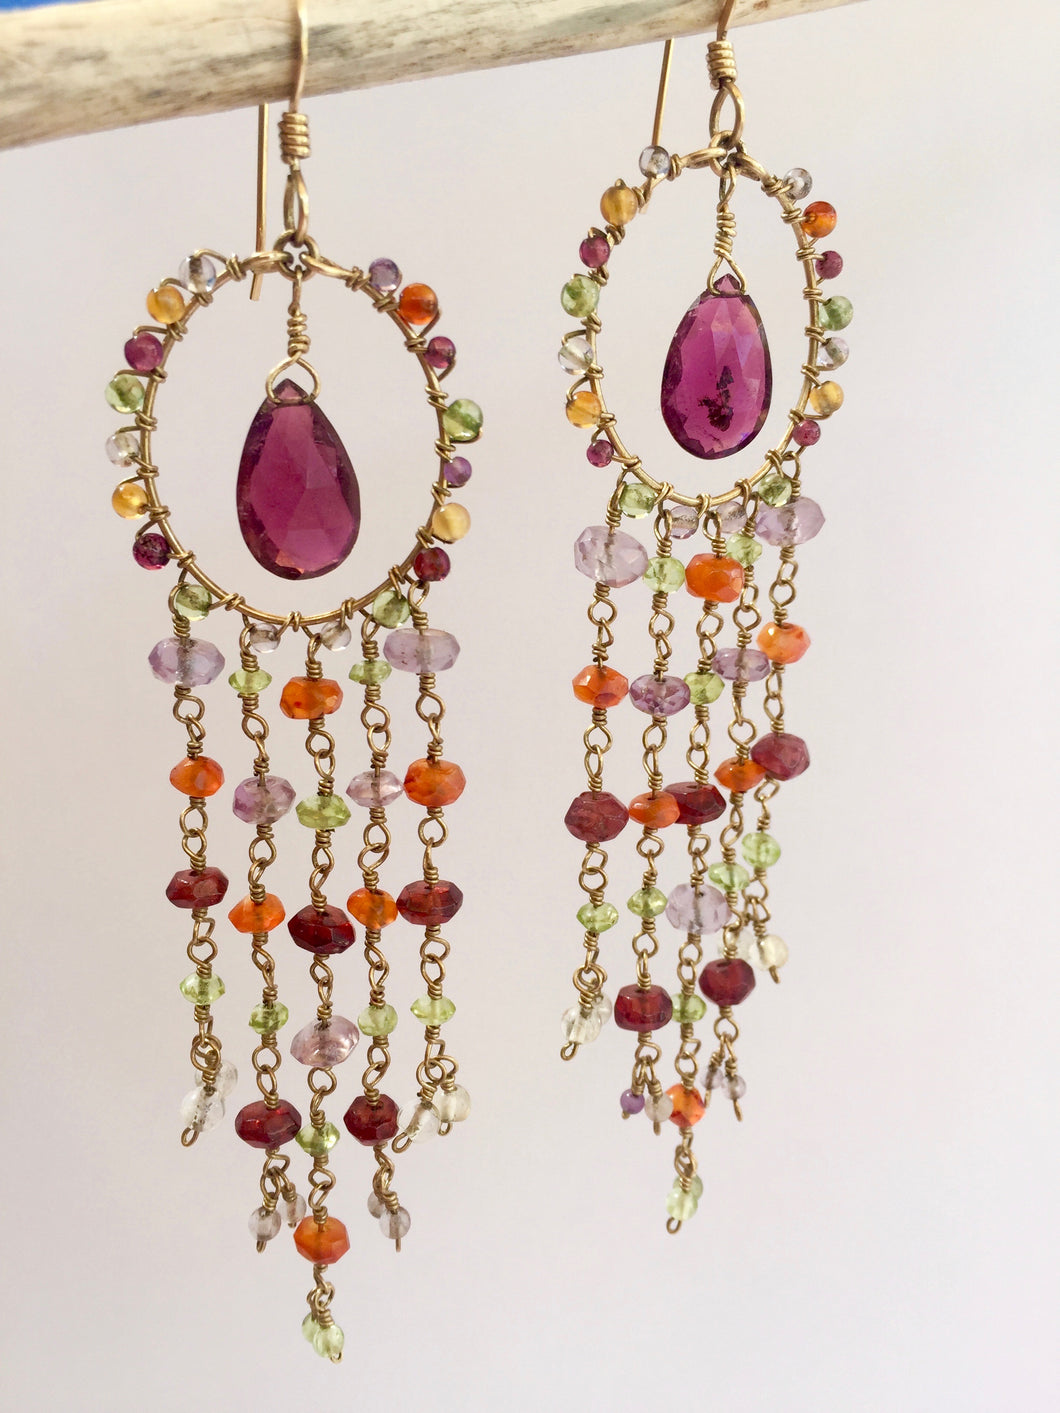 Waterfall Earrings, gold hanging